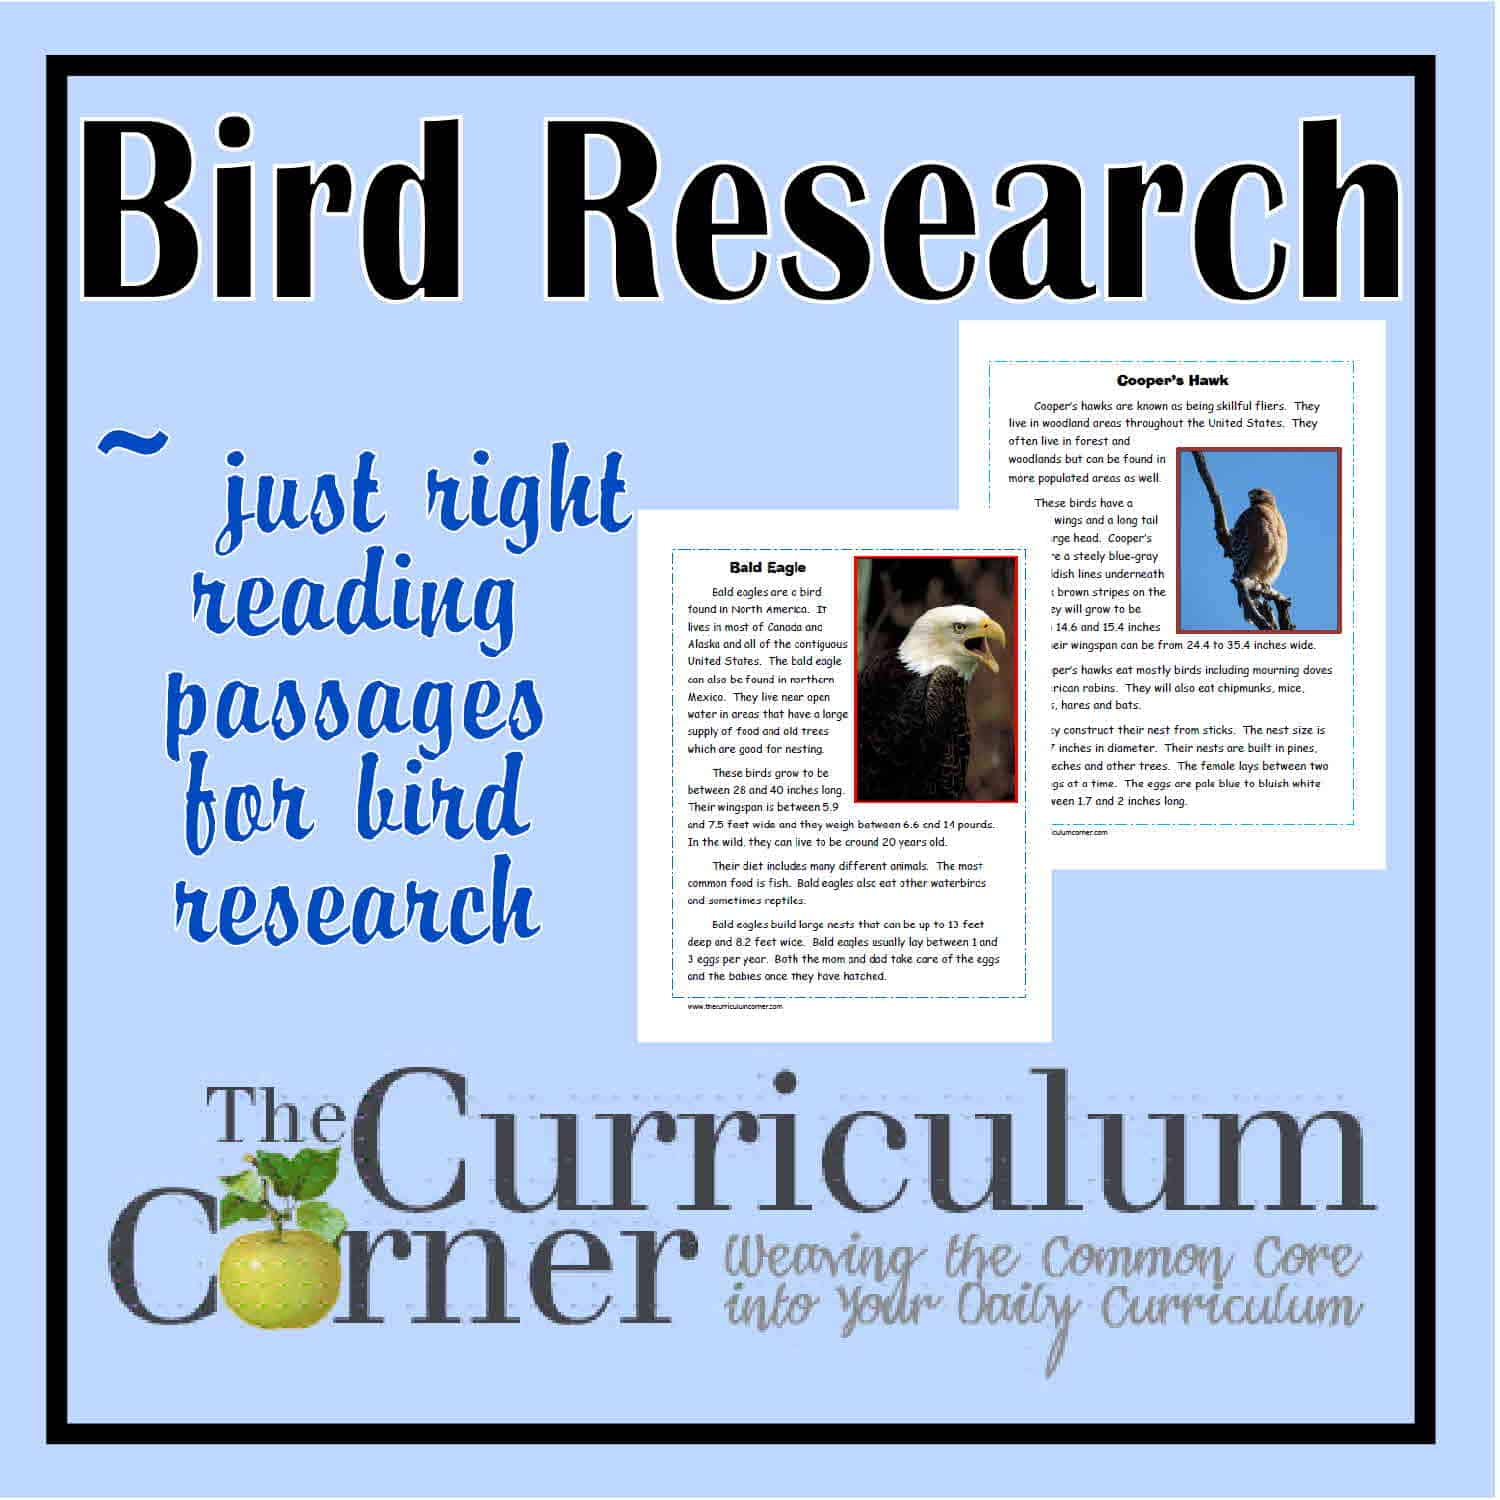 Bird Research Passages